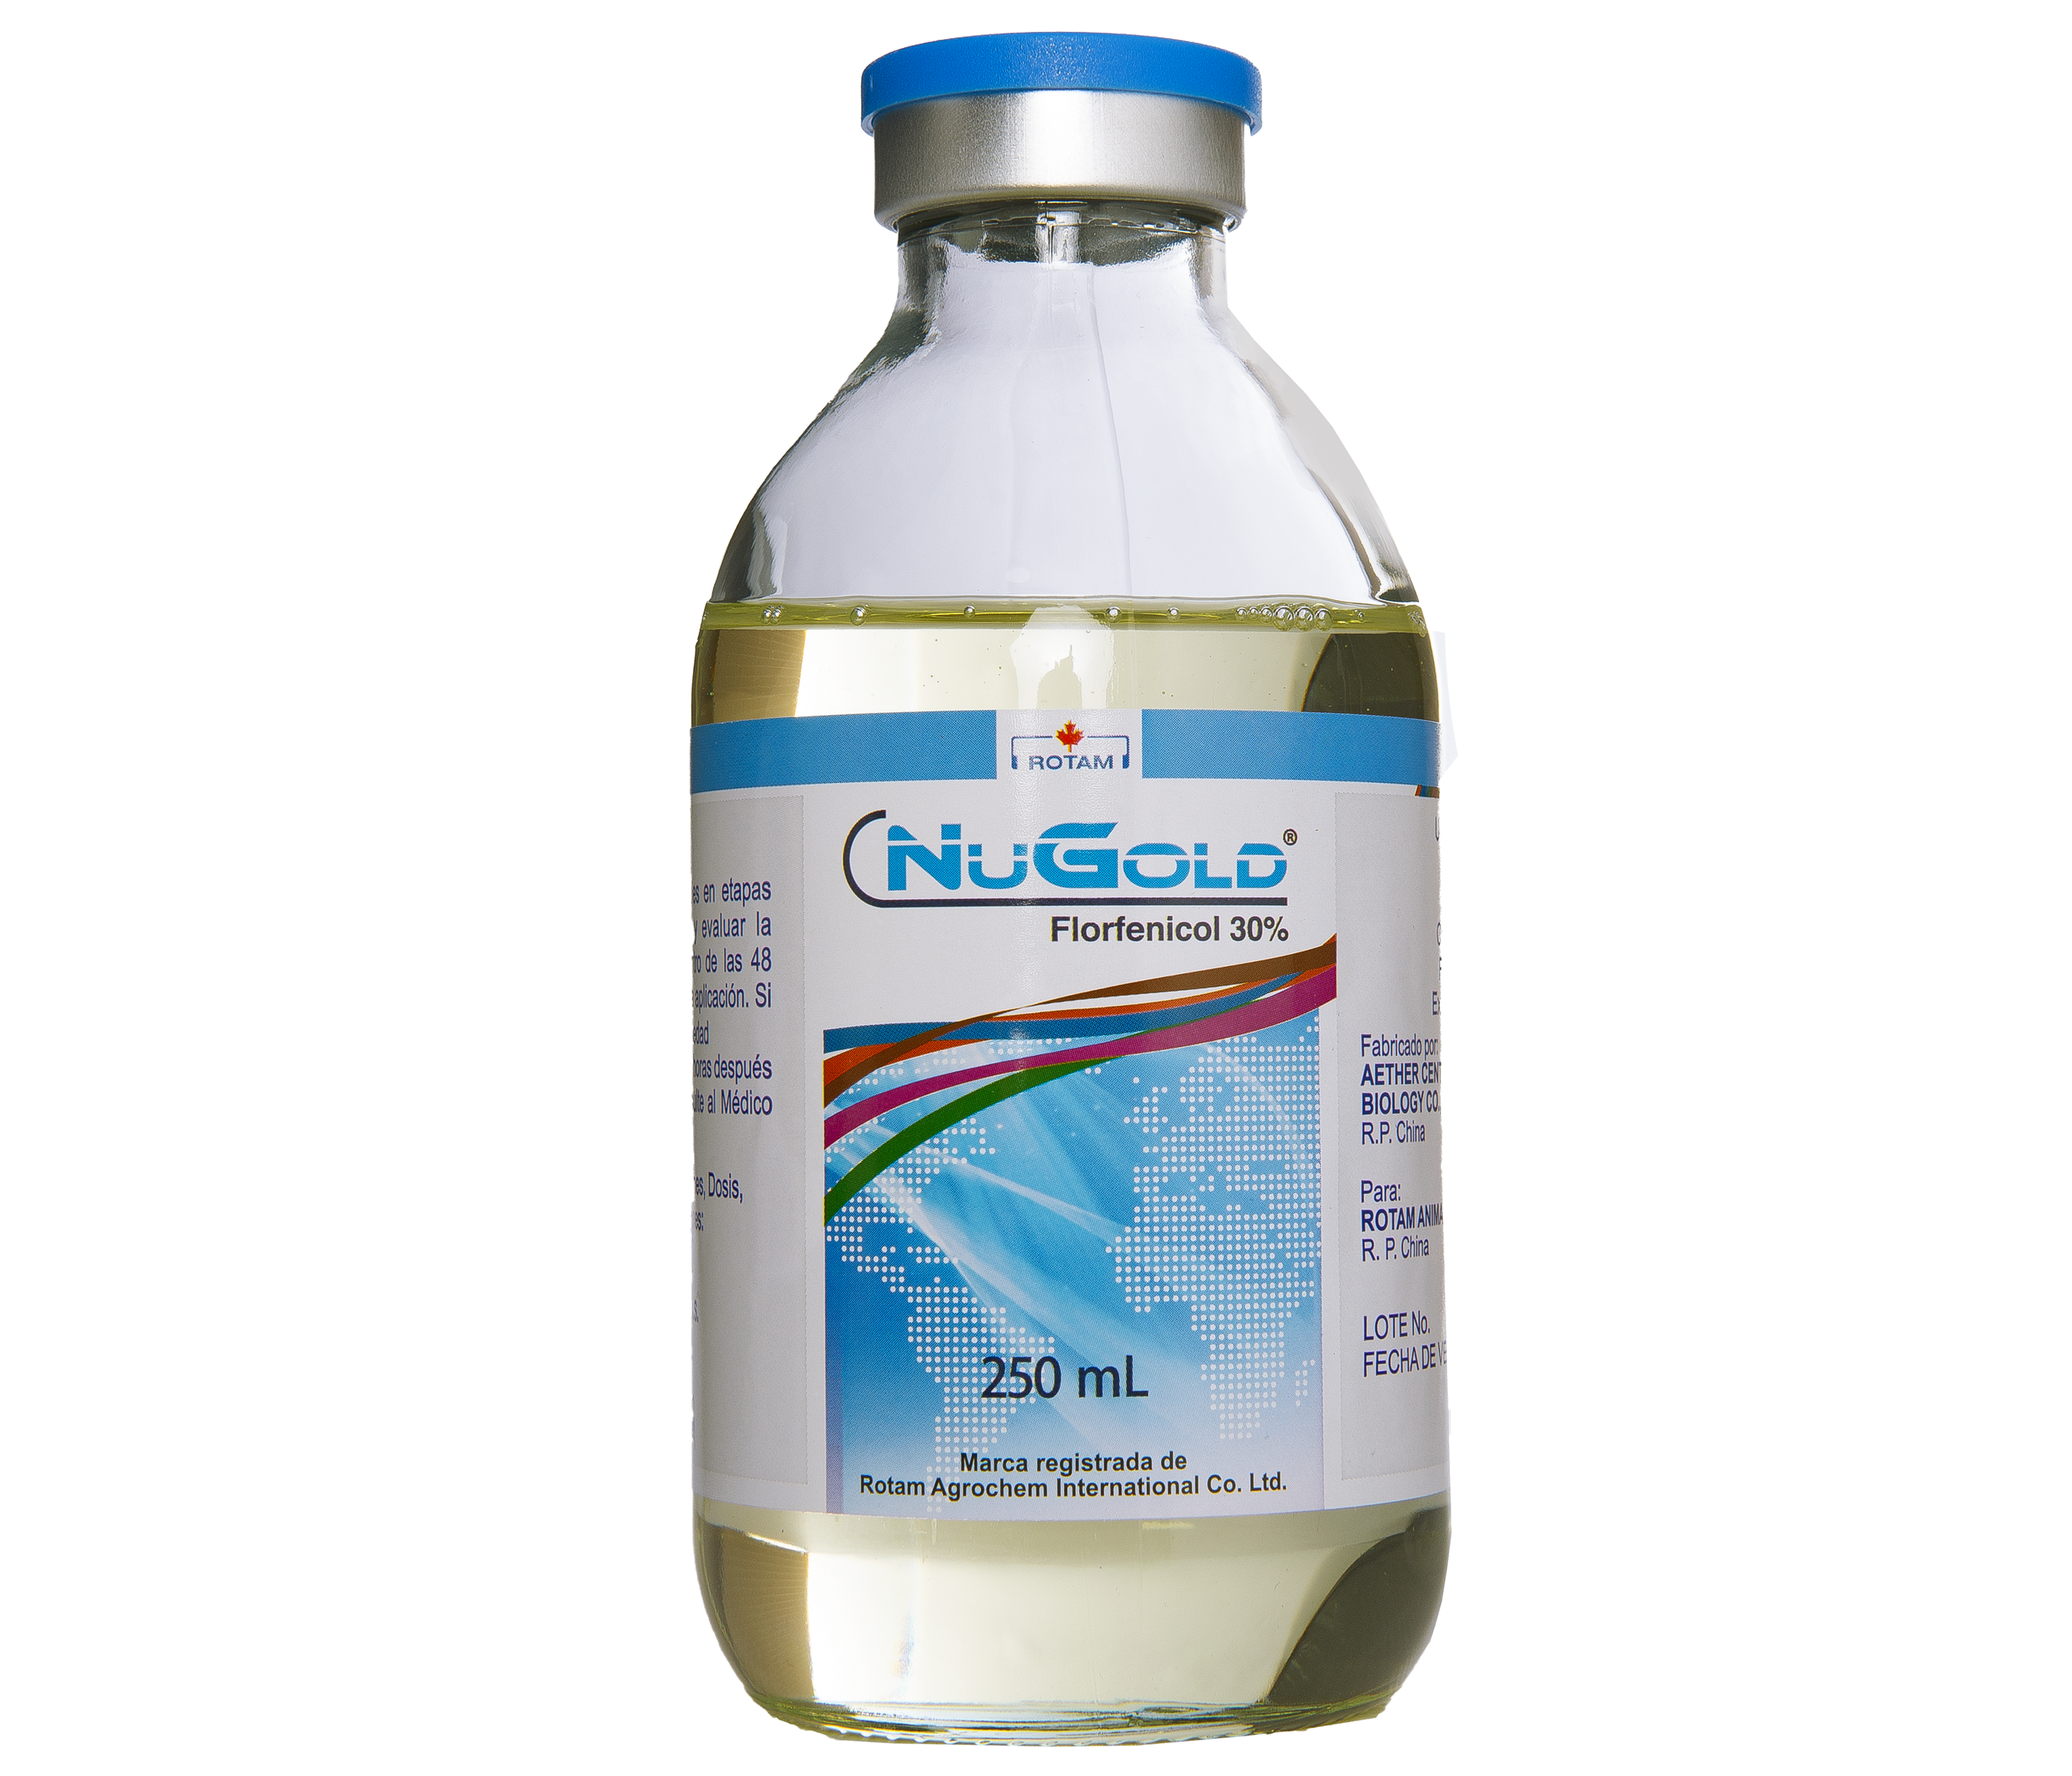 NUGOLD 250ML